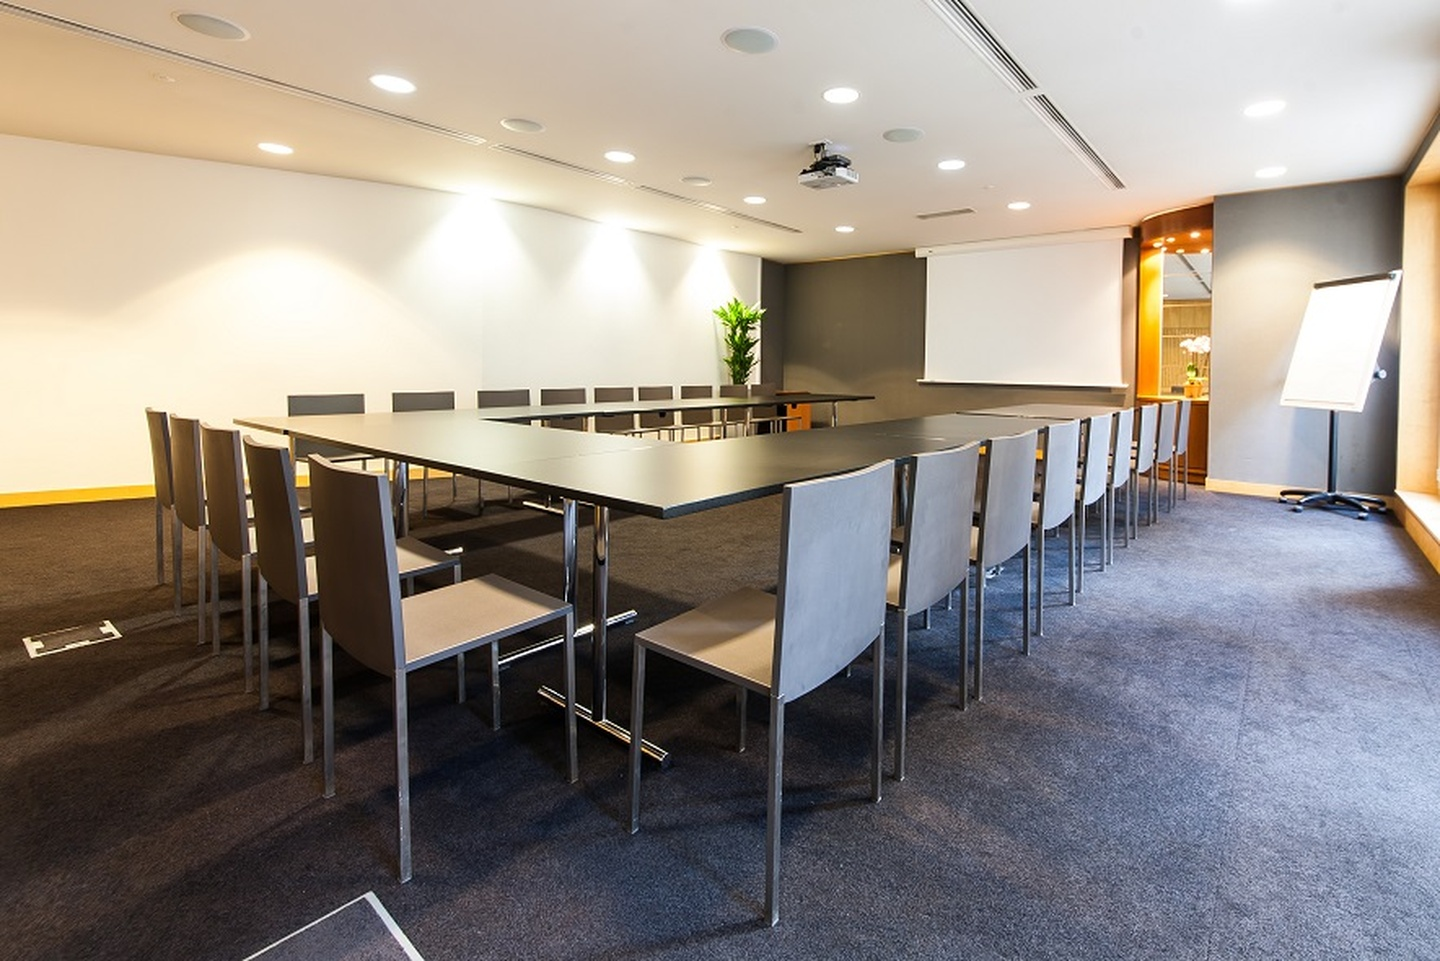 Paris corporate event venues Meeting room SERVCORP - Edouard VII Conference Center - Tokyo Meeting room image 2